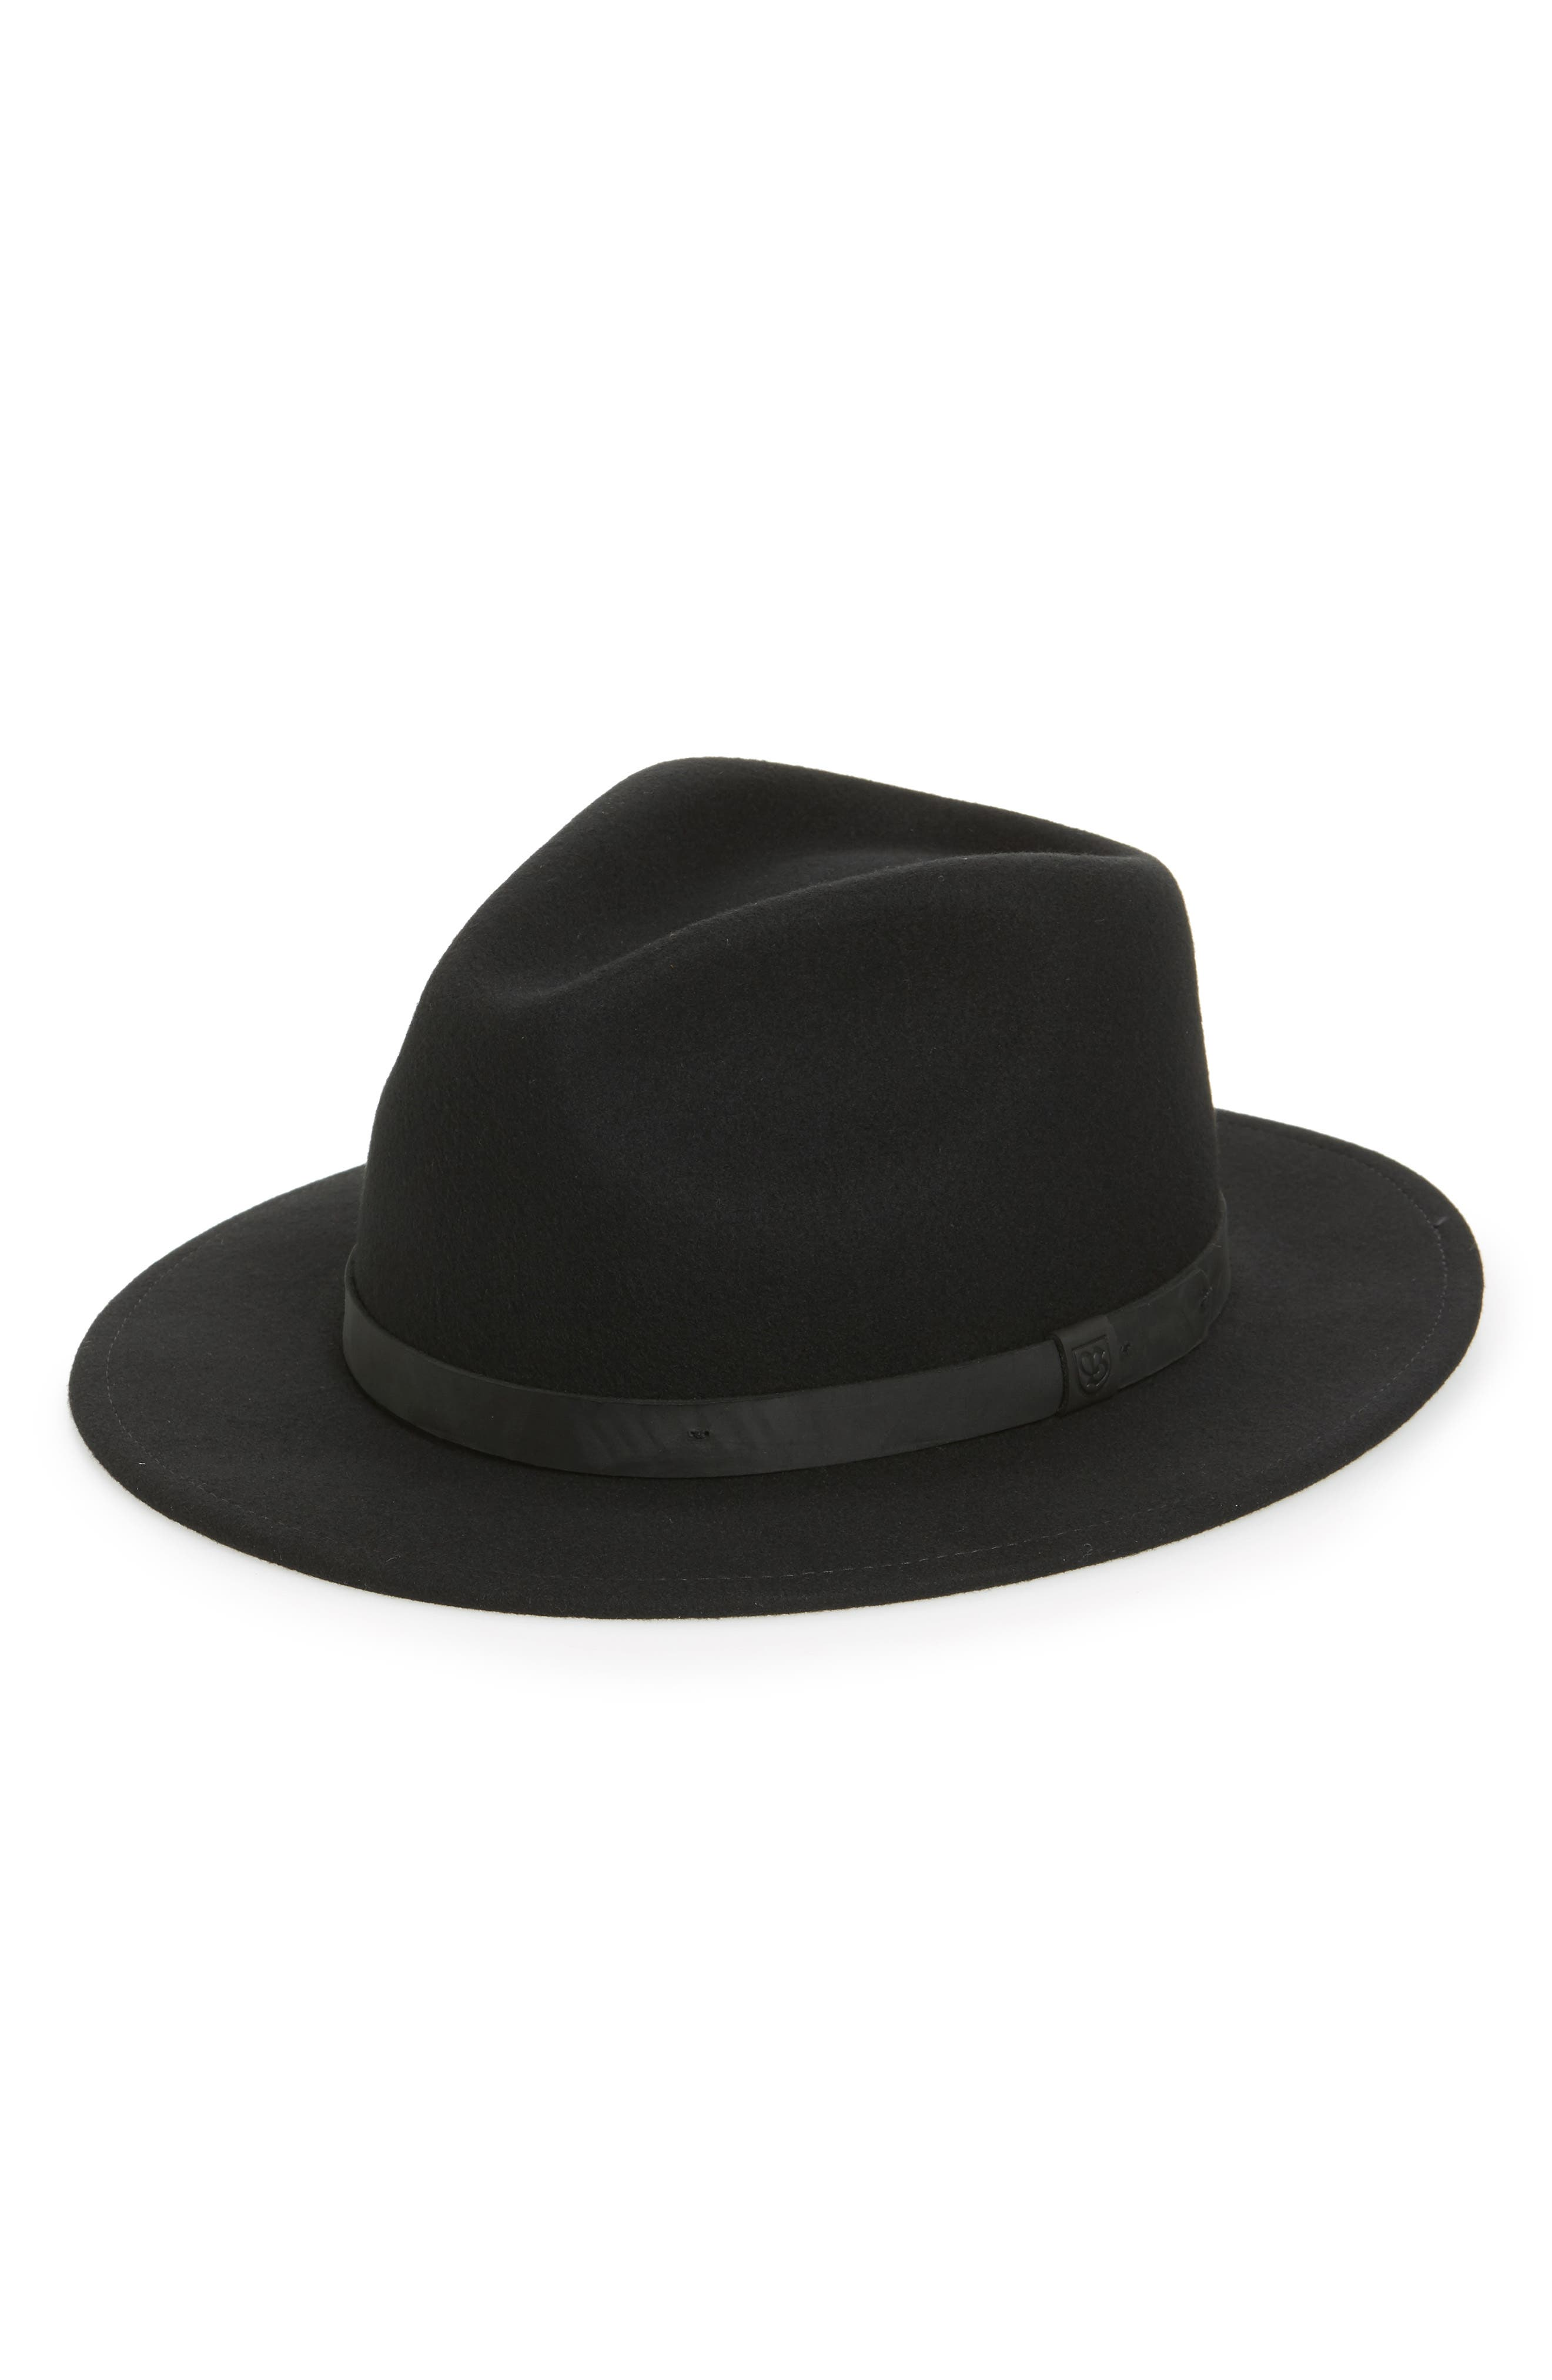 Brixton Messer Ii Felted Wool Fedora - Black (Nordstrom Exclusive)